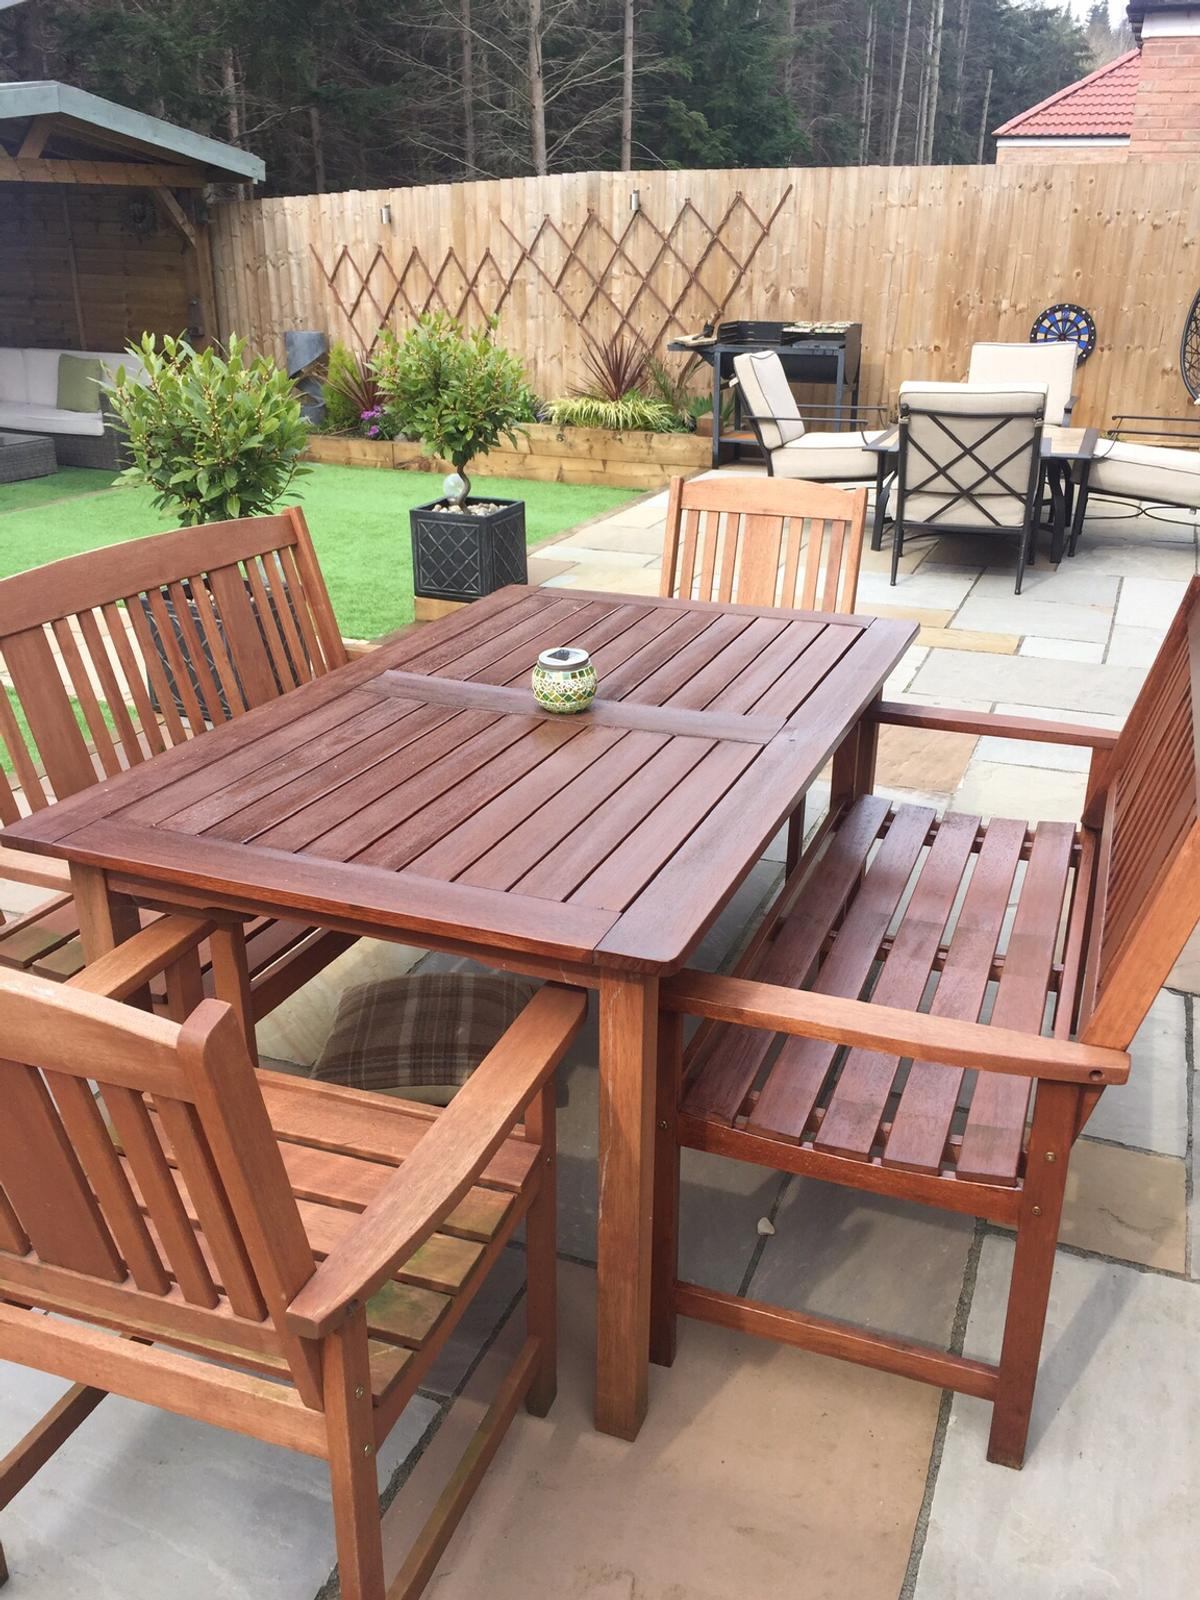 Outdoor Garden Table And Chairs Wooden